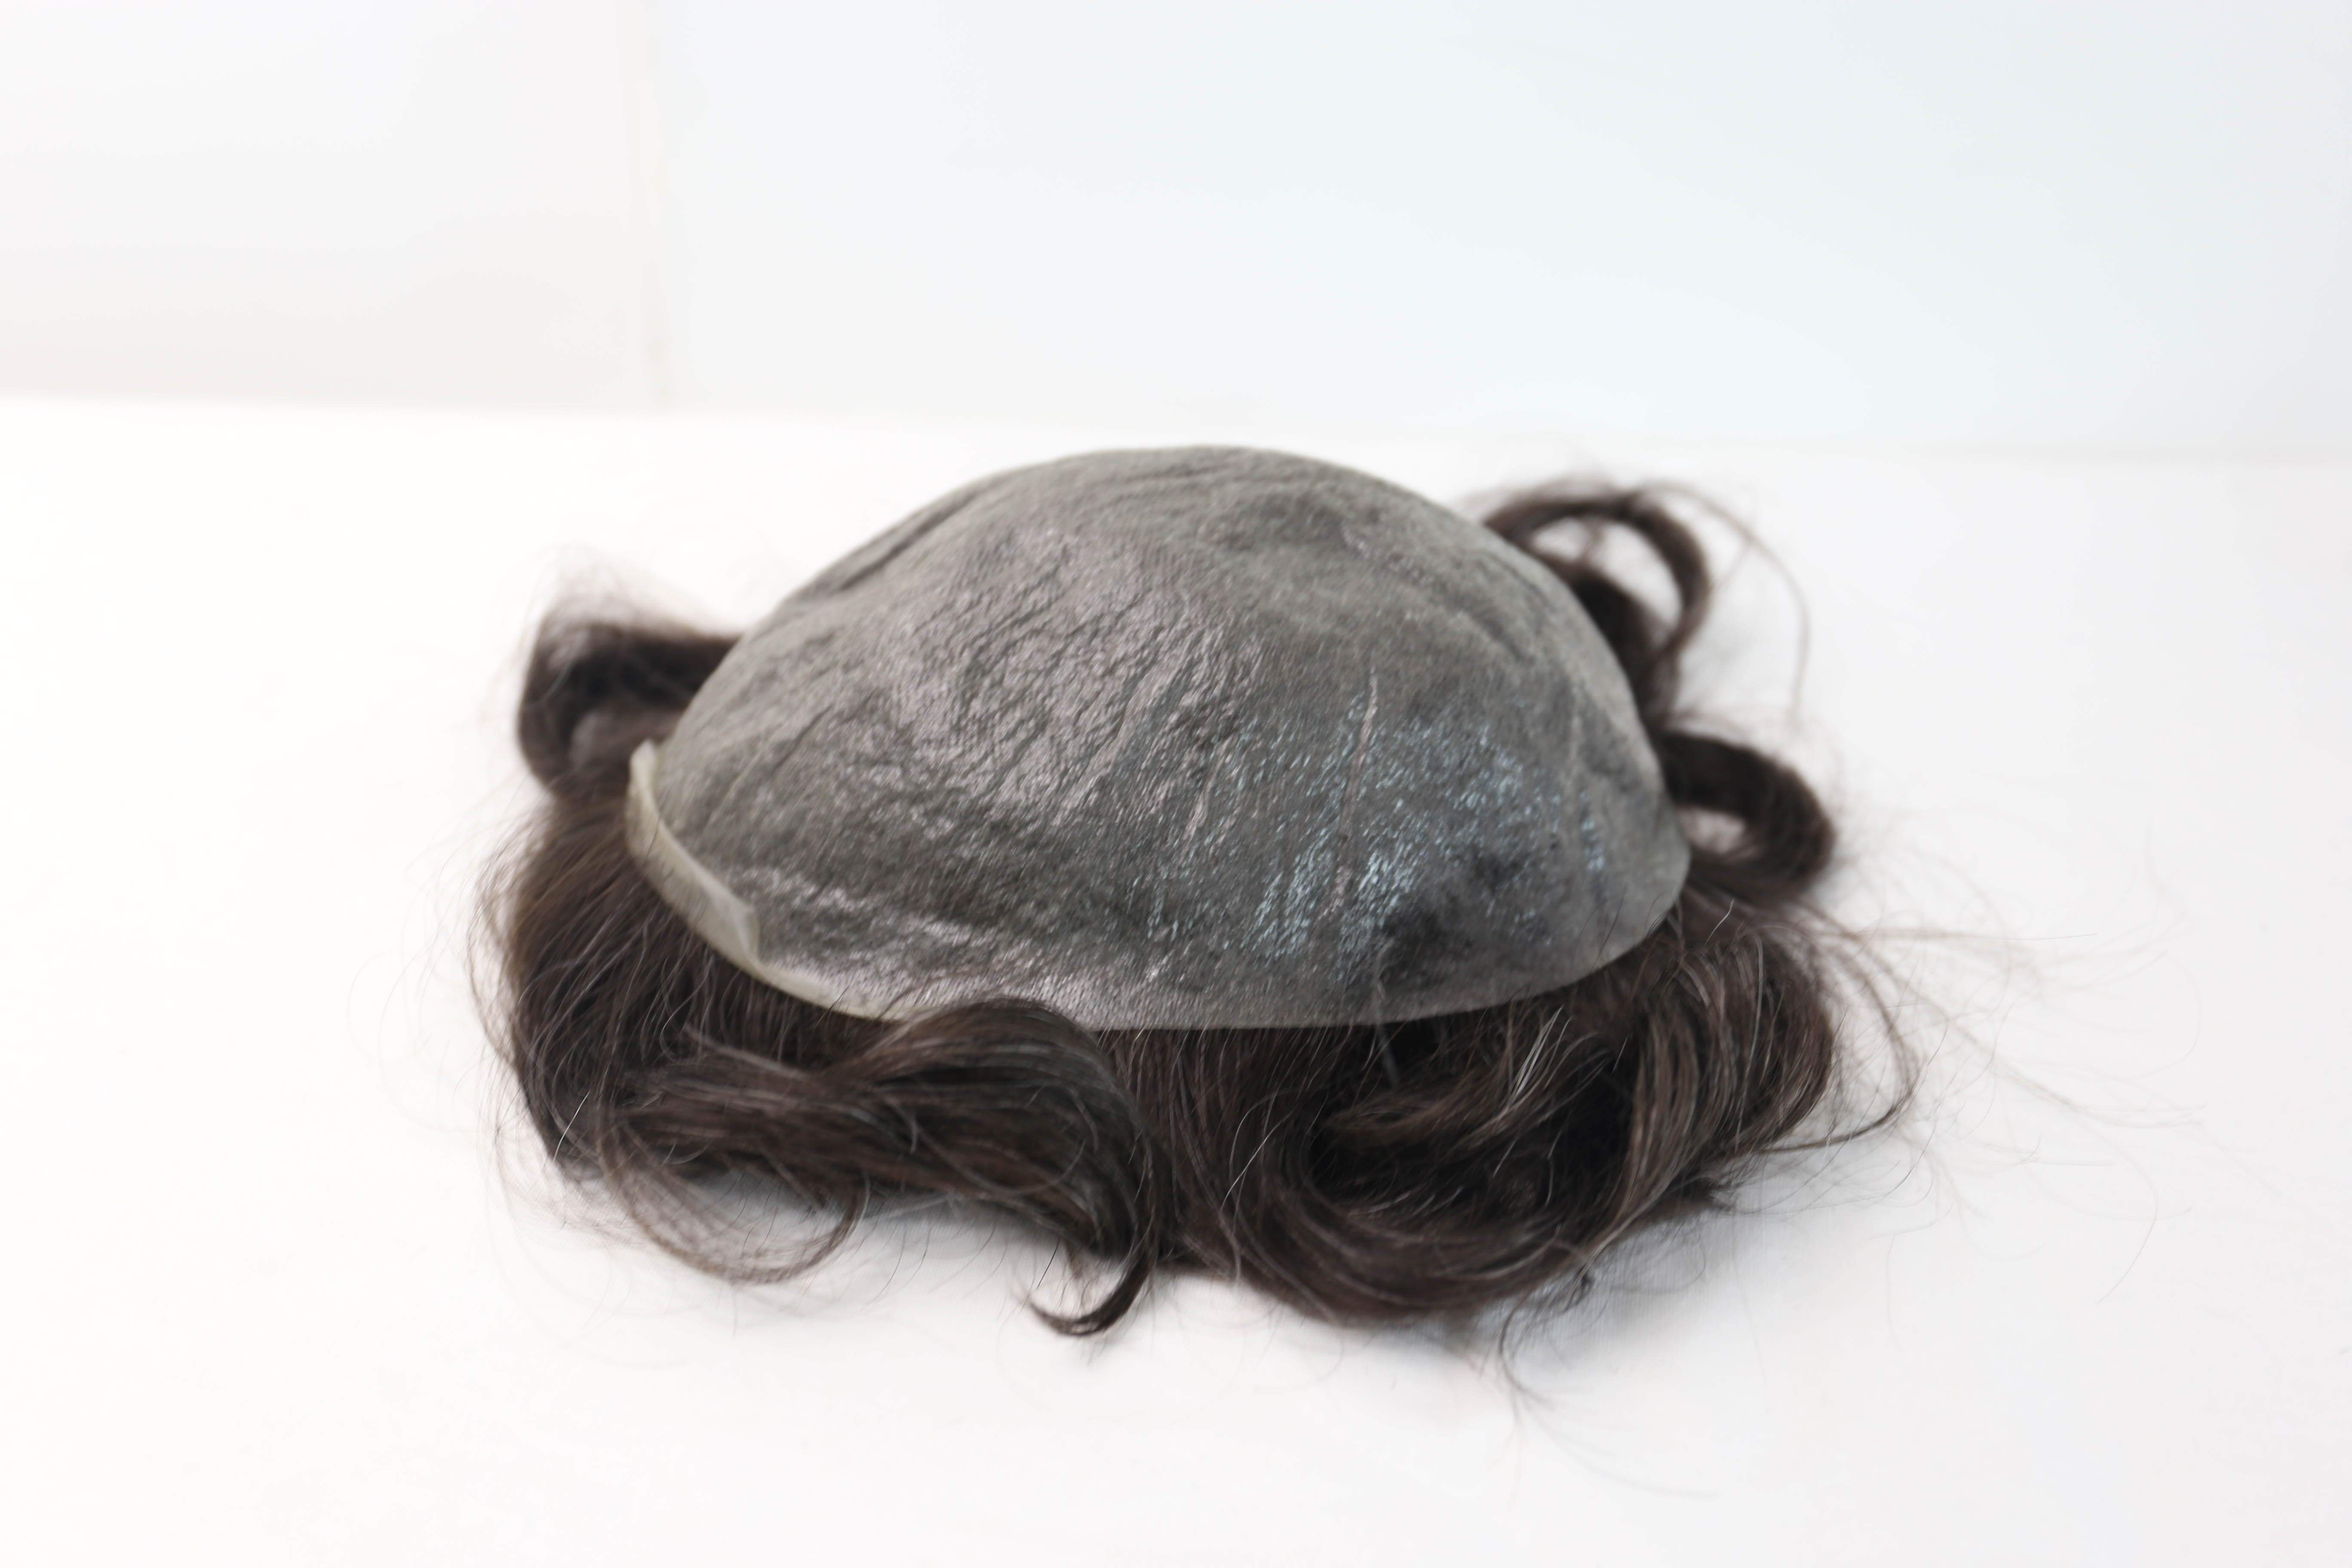 Men Toupee Wigs Hair Replacement System Hair Prosthesis Base Thin Skin Human Hair Toupee Remy #220 Grey Brown Free Shipping